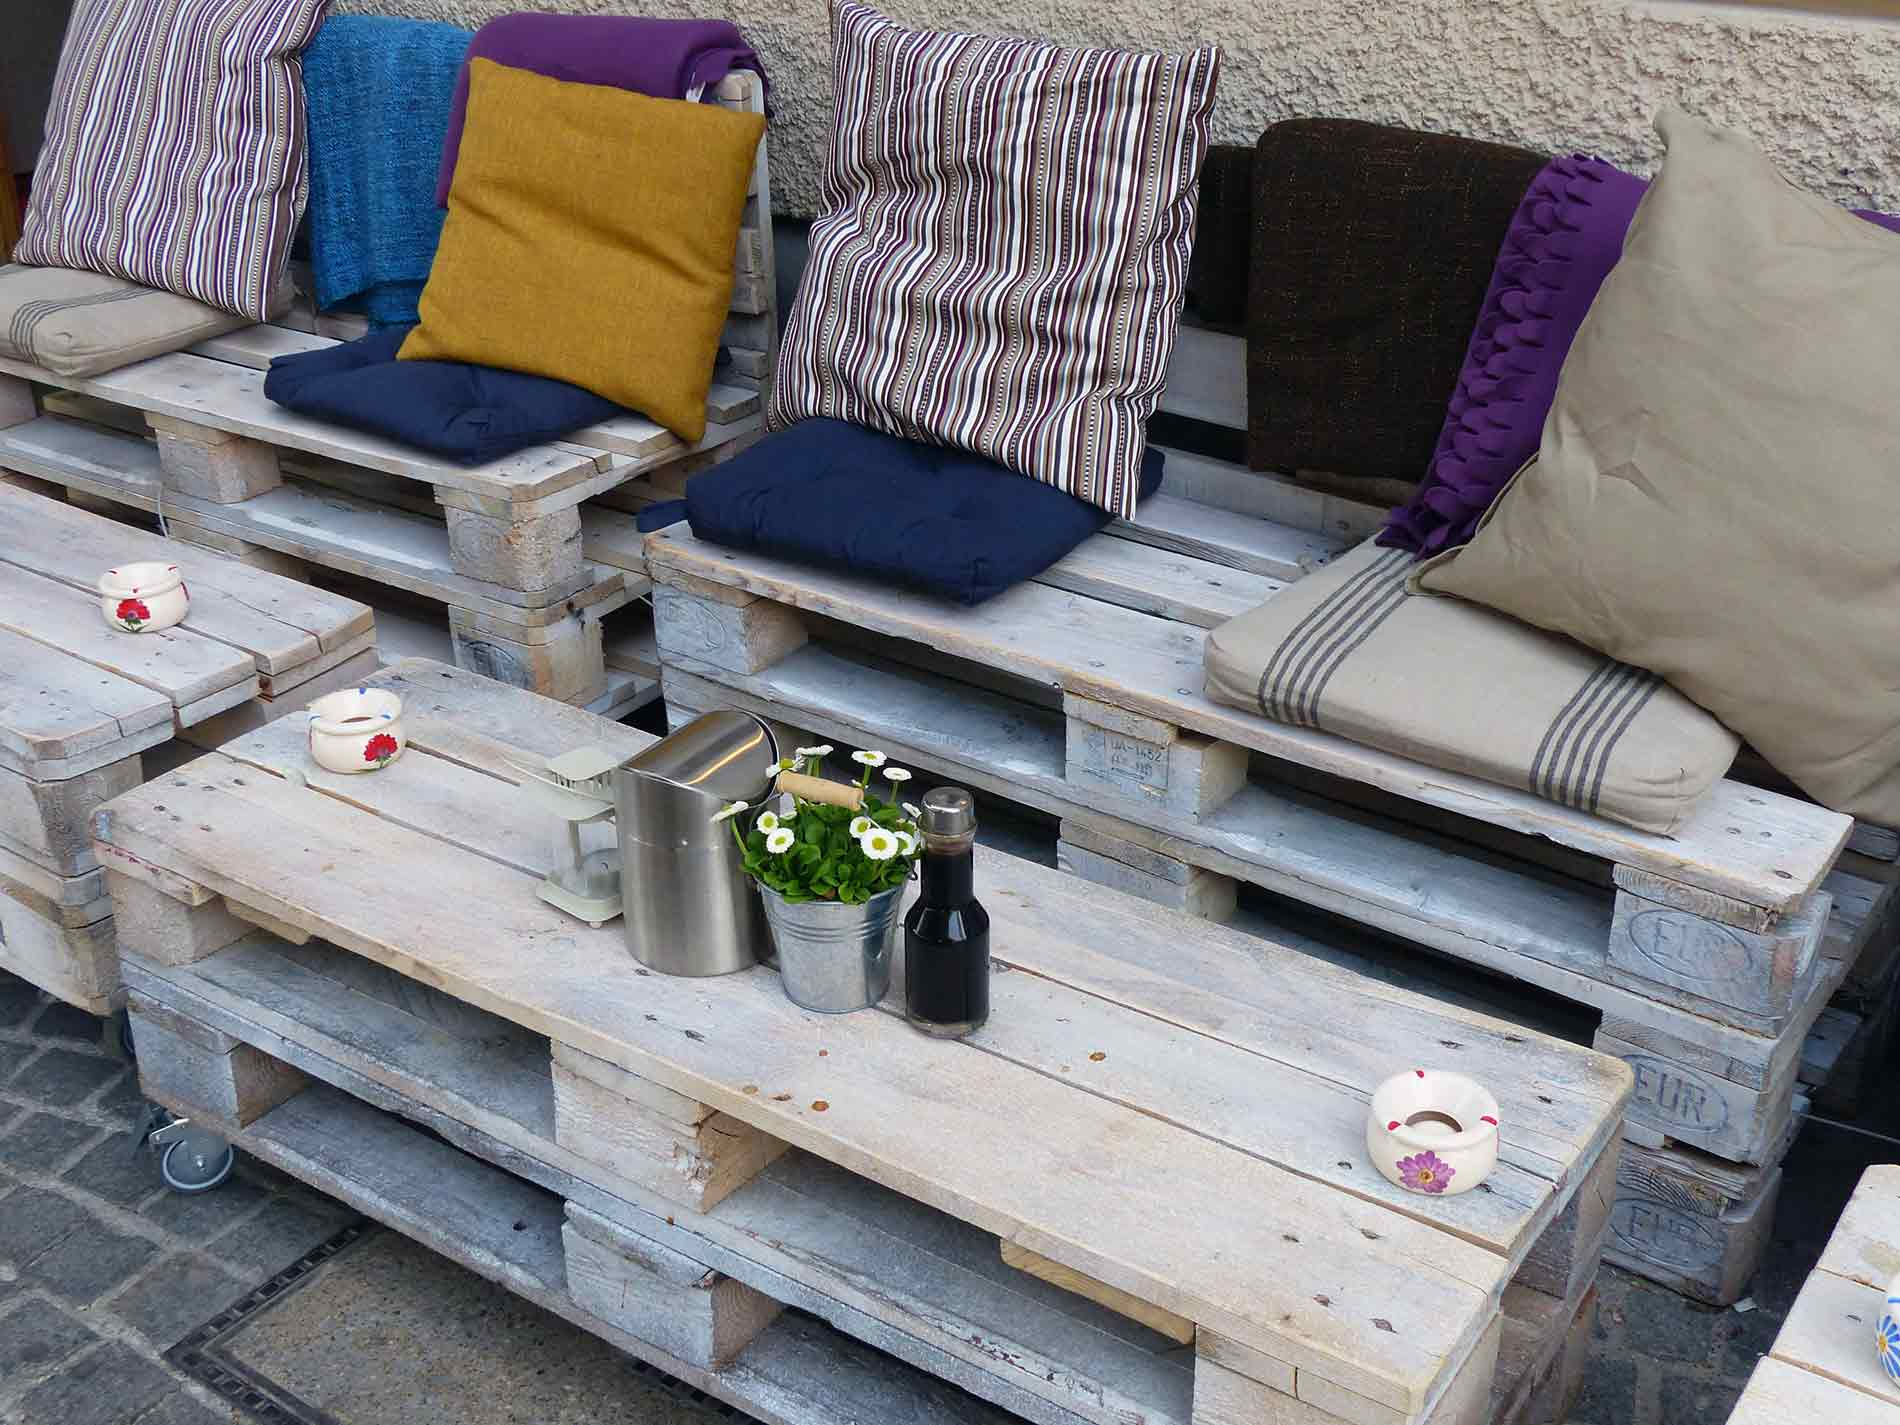 furniture on a patio